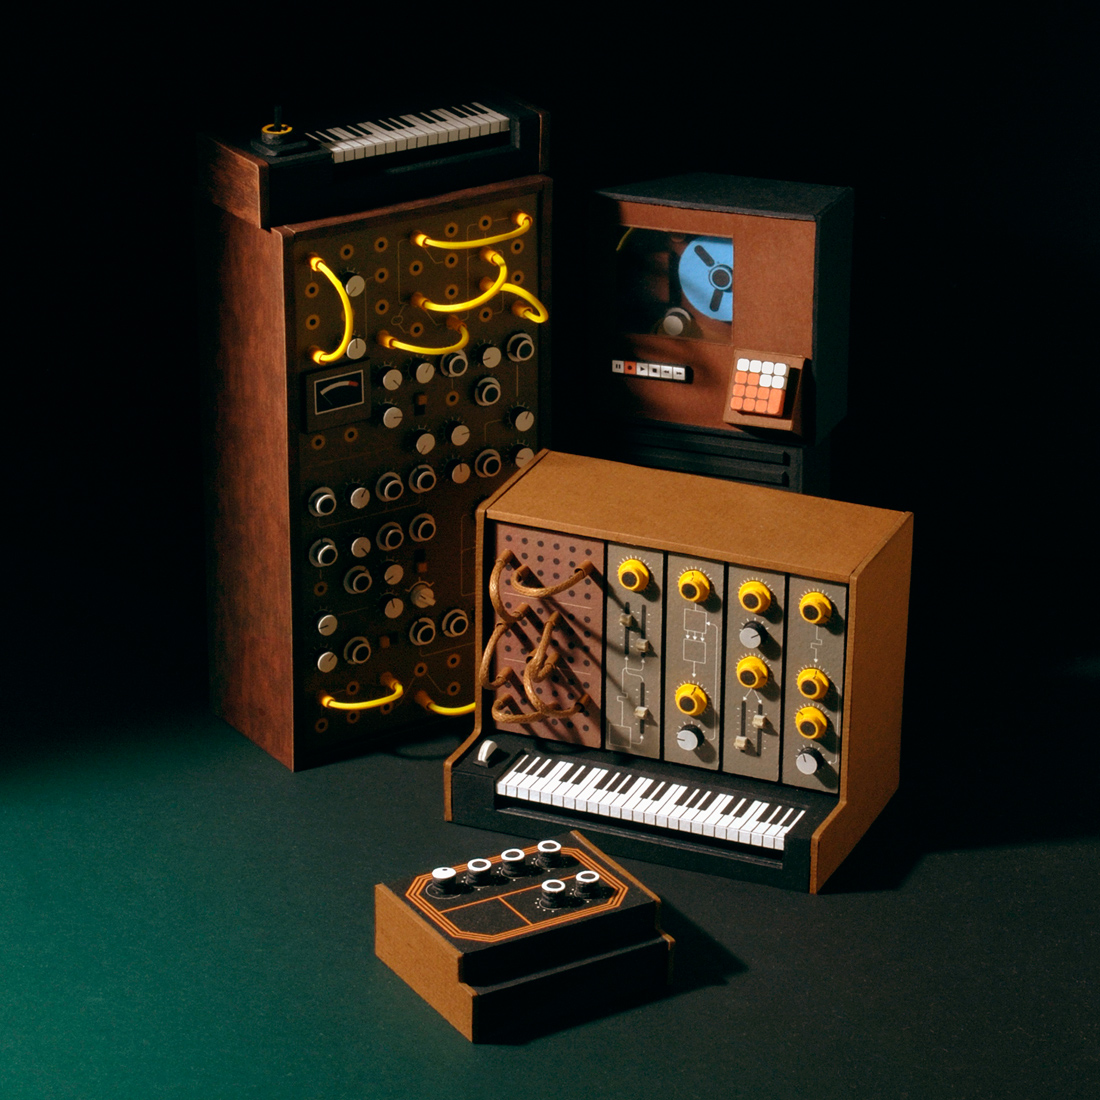 Miniature Analogue Papercraft Synthesizers by Dan McPharlin